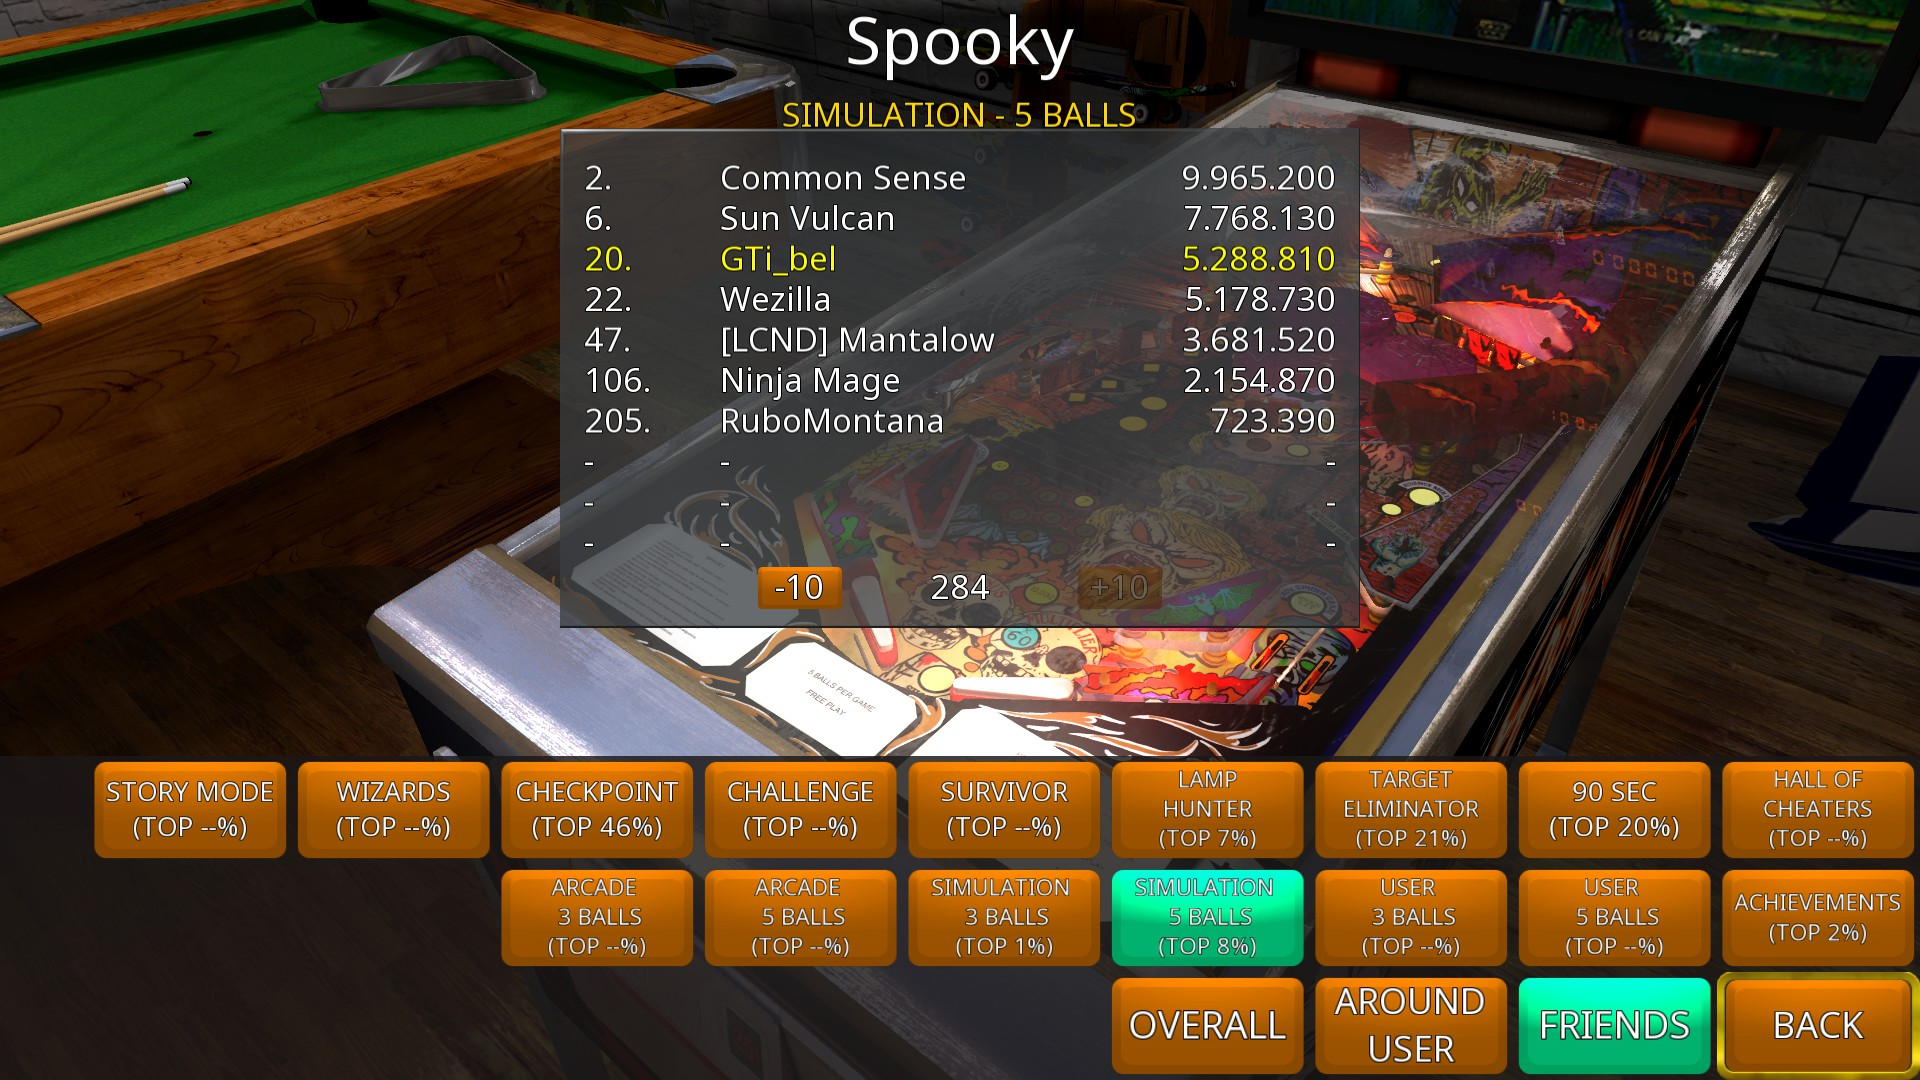 GTibel: Zaccaria Pinball: Spooky [5 balls] (PC) 5,288,810 points on 2018-08-16 13:40:22